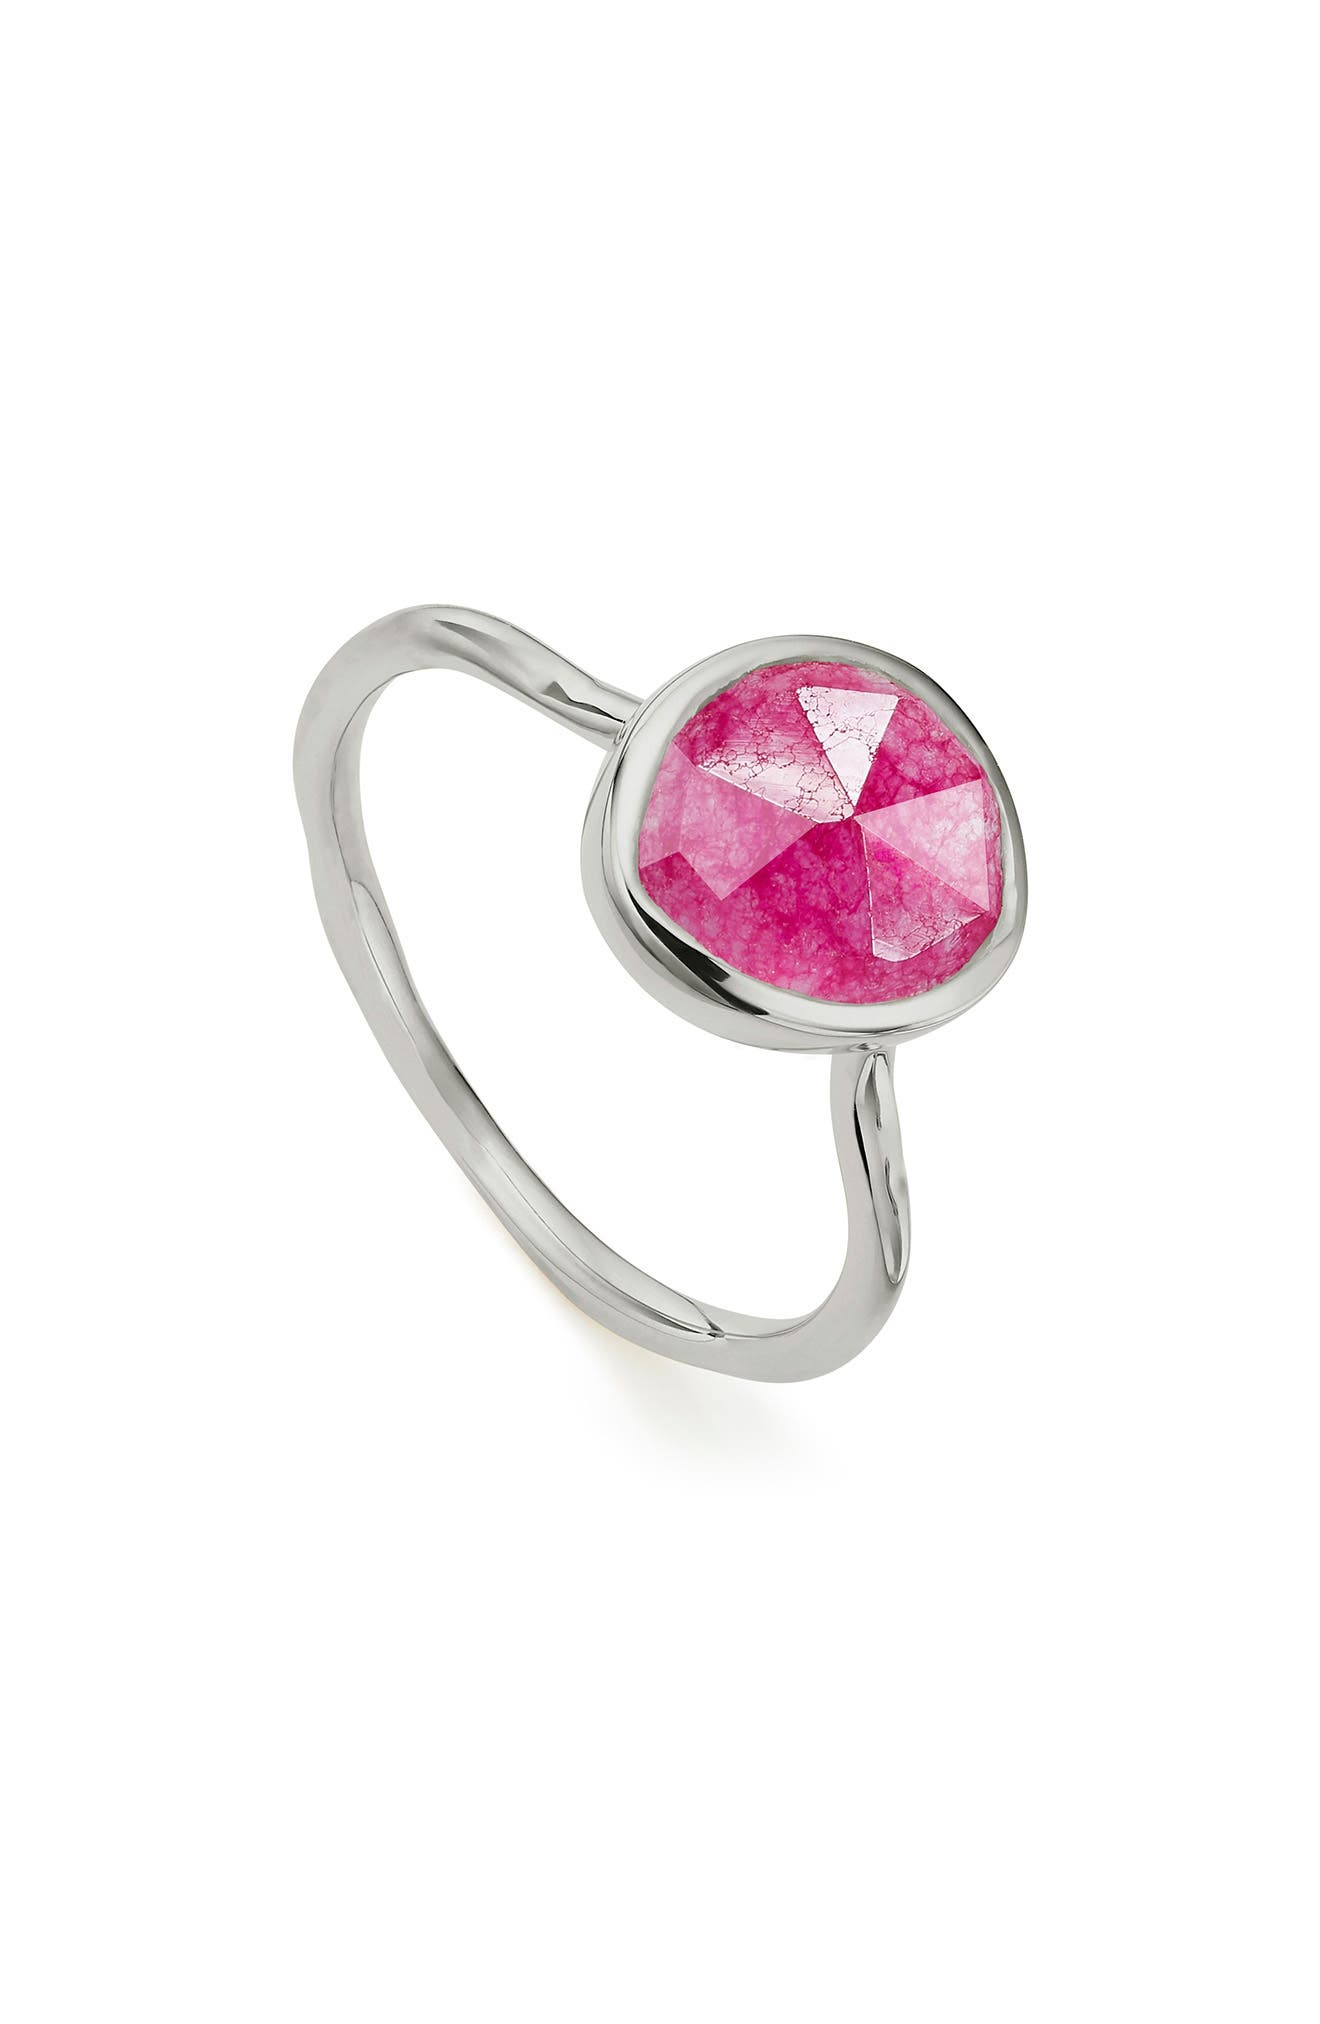 Siren Stacking Ring,                         Main,                         color, SILVER/ PINK QUARTZ